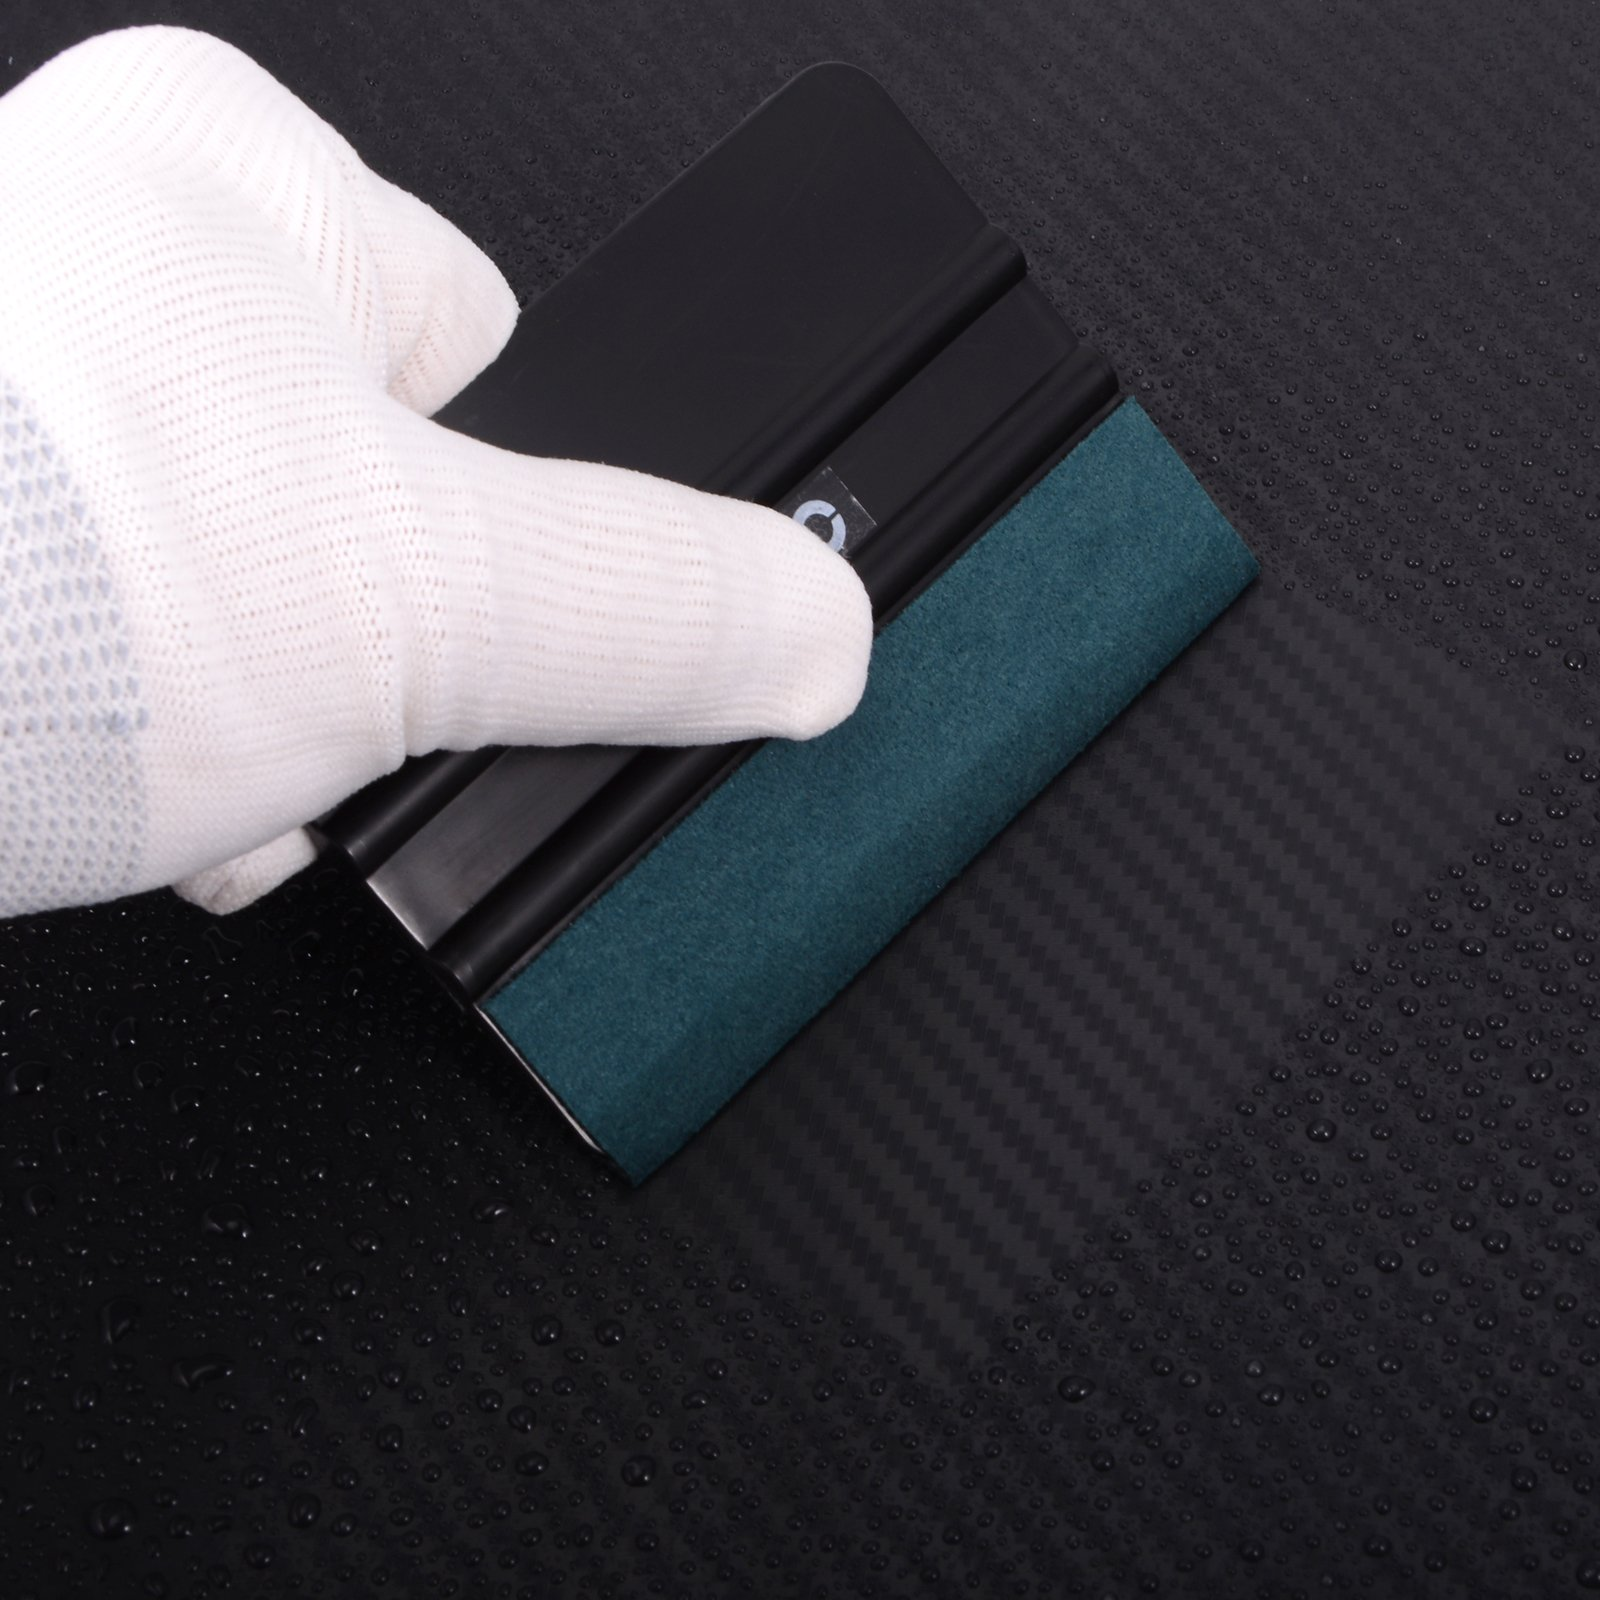 FOSHIO Car Wrap Application Kit include 4 Inch Film Squeegees, Wool squeegee, Vinyl Cutters, Tint Magnet holders, 3 Kinds of Squeegee Felts, Gloves by FOSHIO (Image #6)